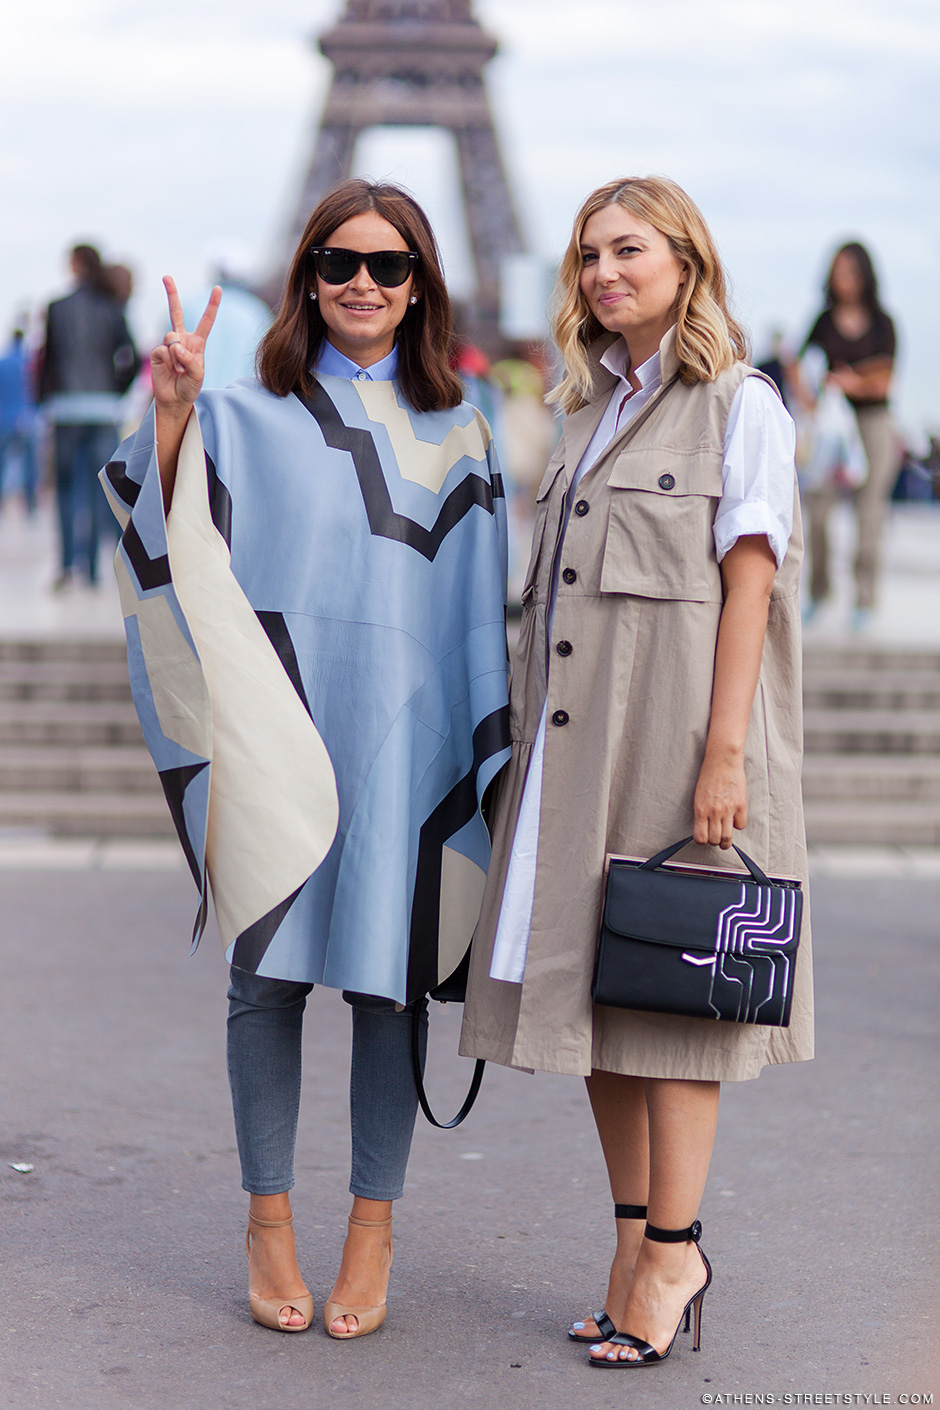 2370-Athens-Streetstyle-Miroslava-Duma-Nasiba-Adilova-Paris-Haute-Couture-Fashion-Week-Fall-Winter-2014-2015-Street-Style